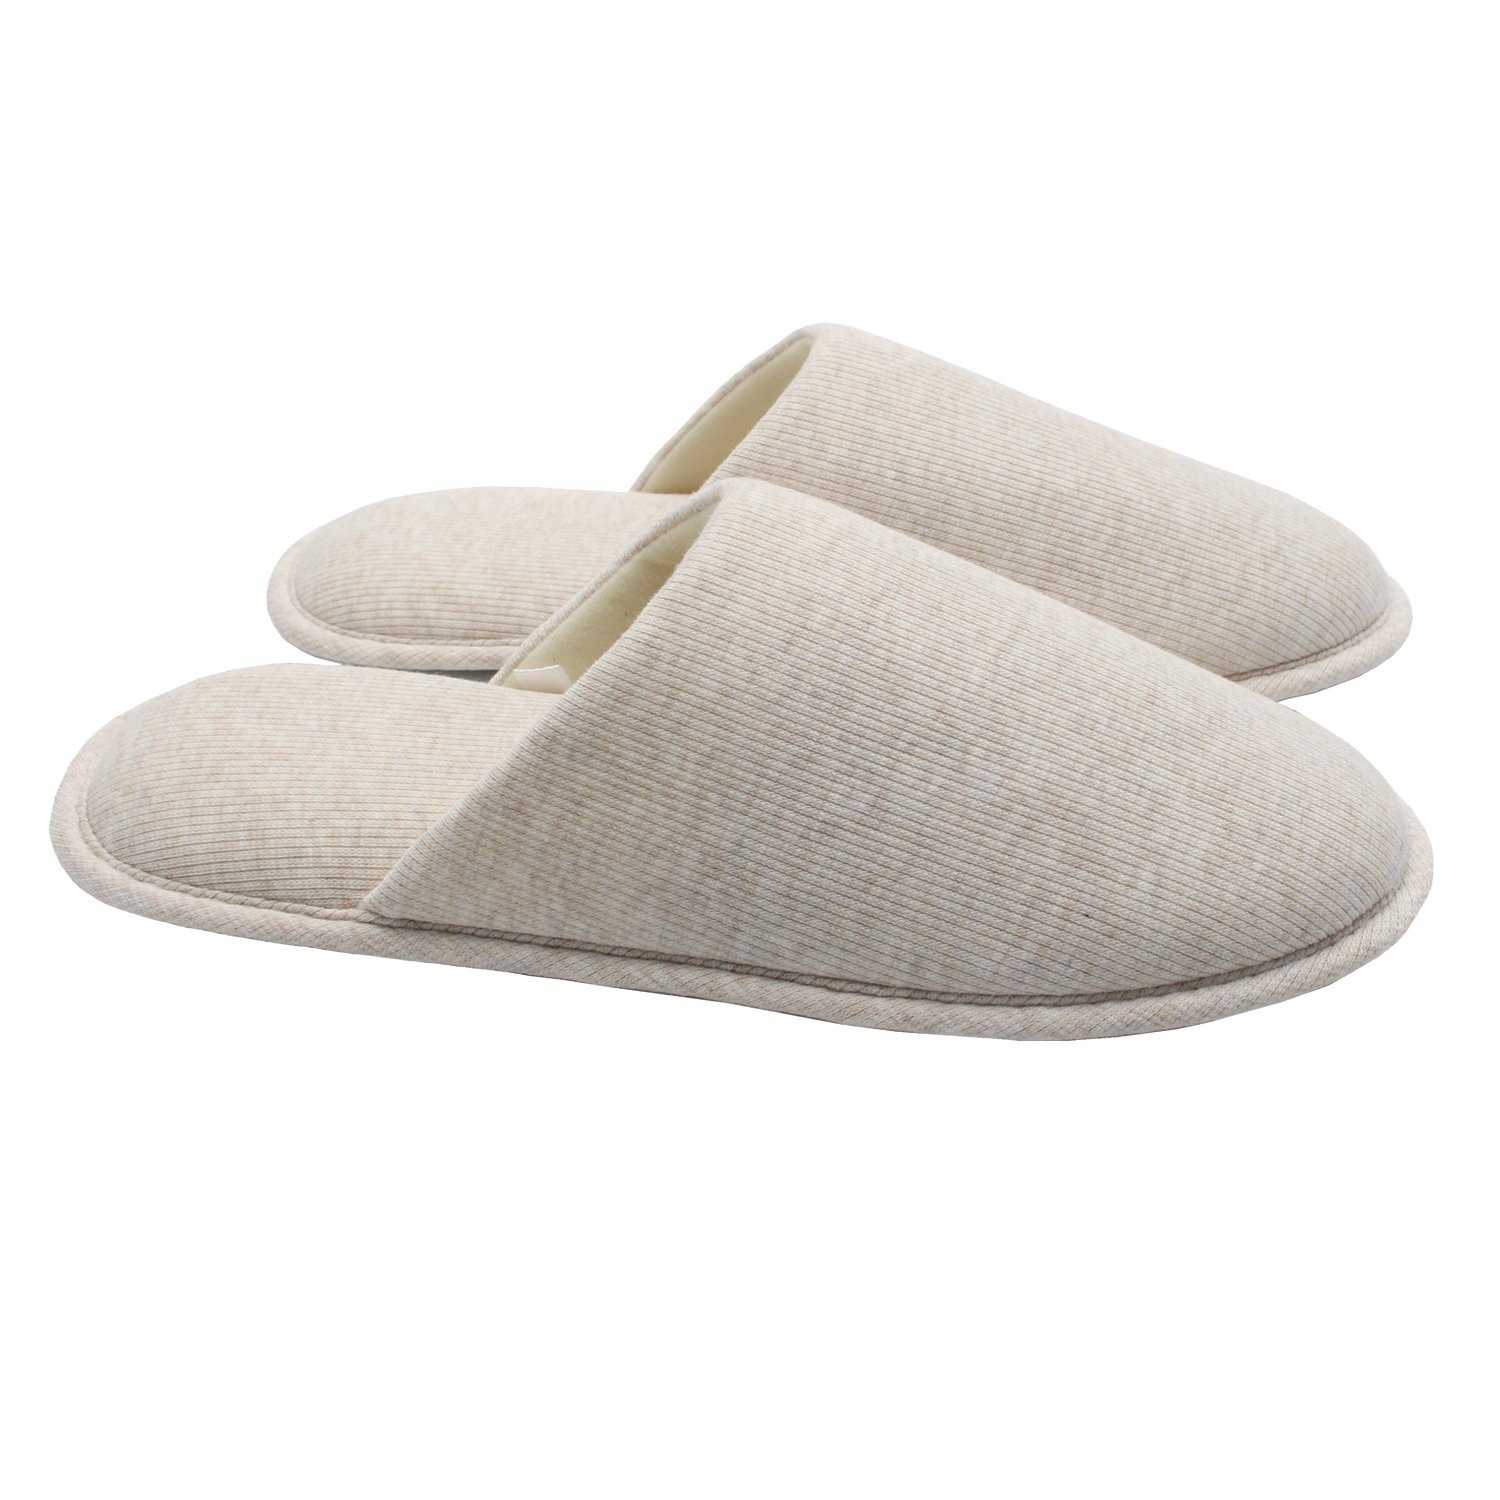 2be9aa657 Amazon.com | ofoot Men's Organic Cotton Cozy Indoor Slippers, Memory Foam  House Flat, Washable Slip On Home Shoes | Slippers